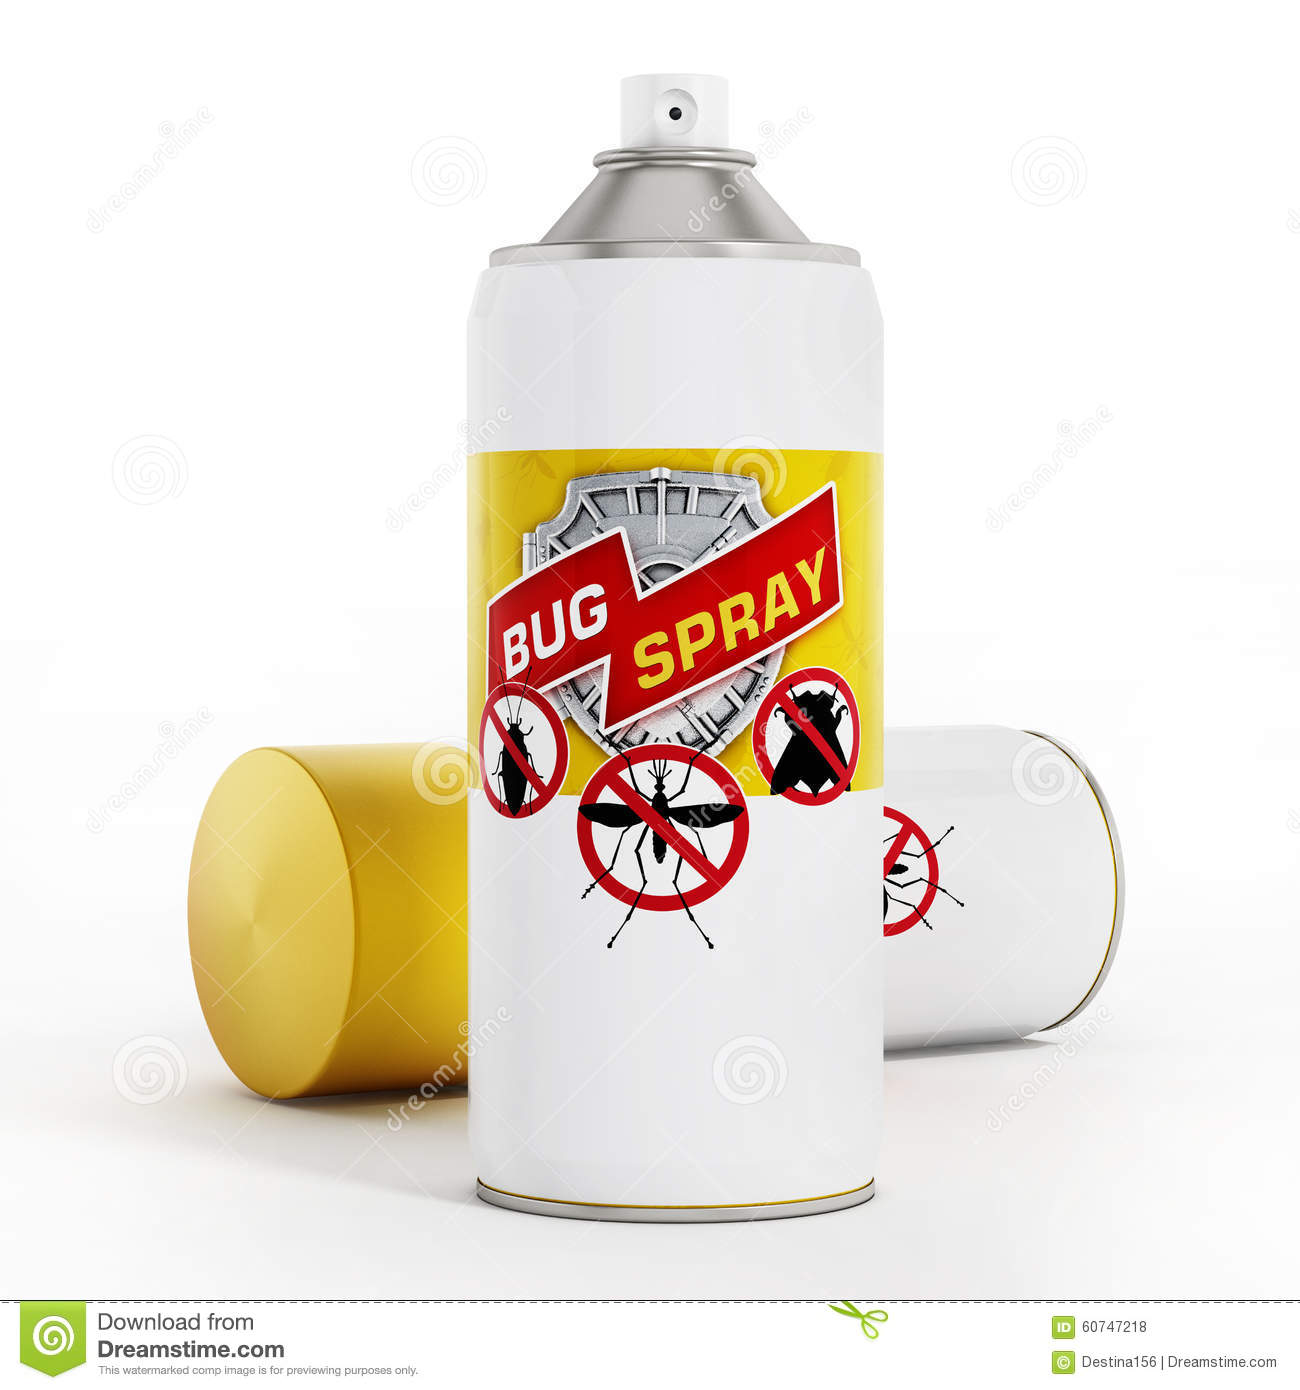 Sprays anti insectes illustration stock image 60747218 for Peinture anti insectes